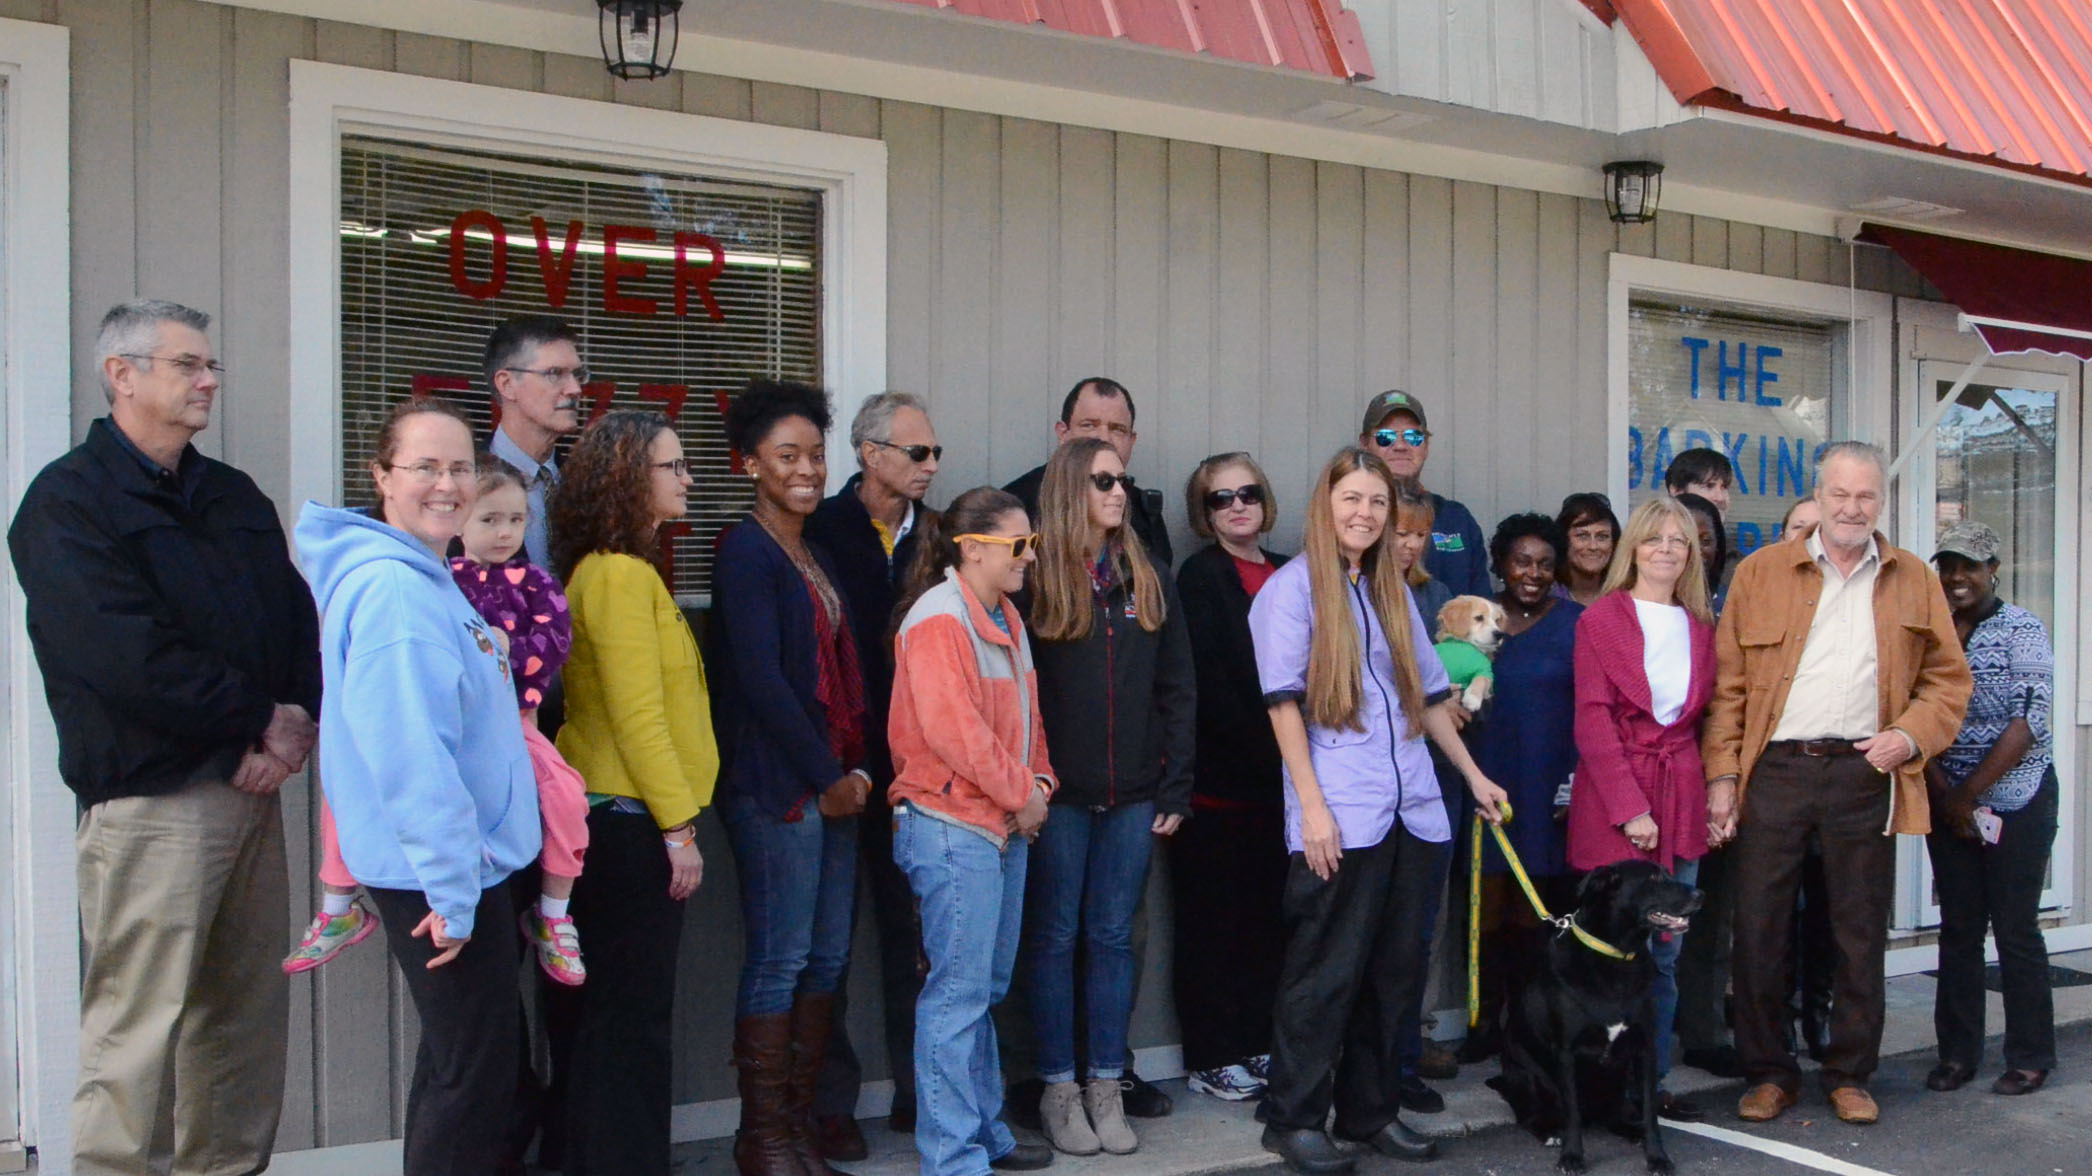 Ribbon Cutting for The Barking Barber1